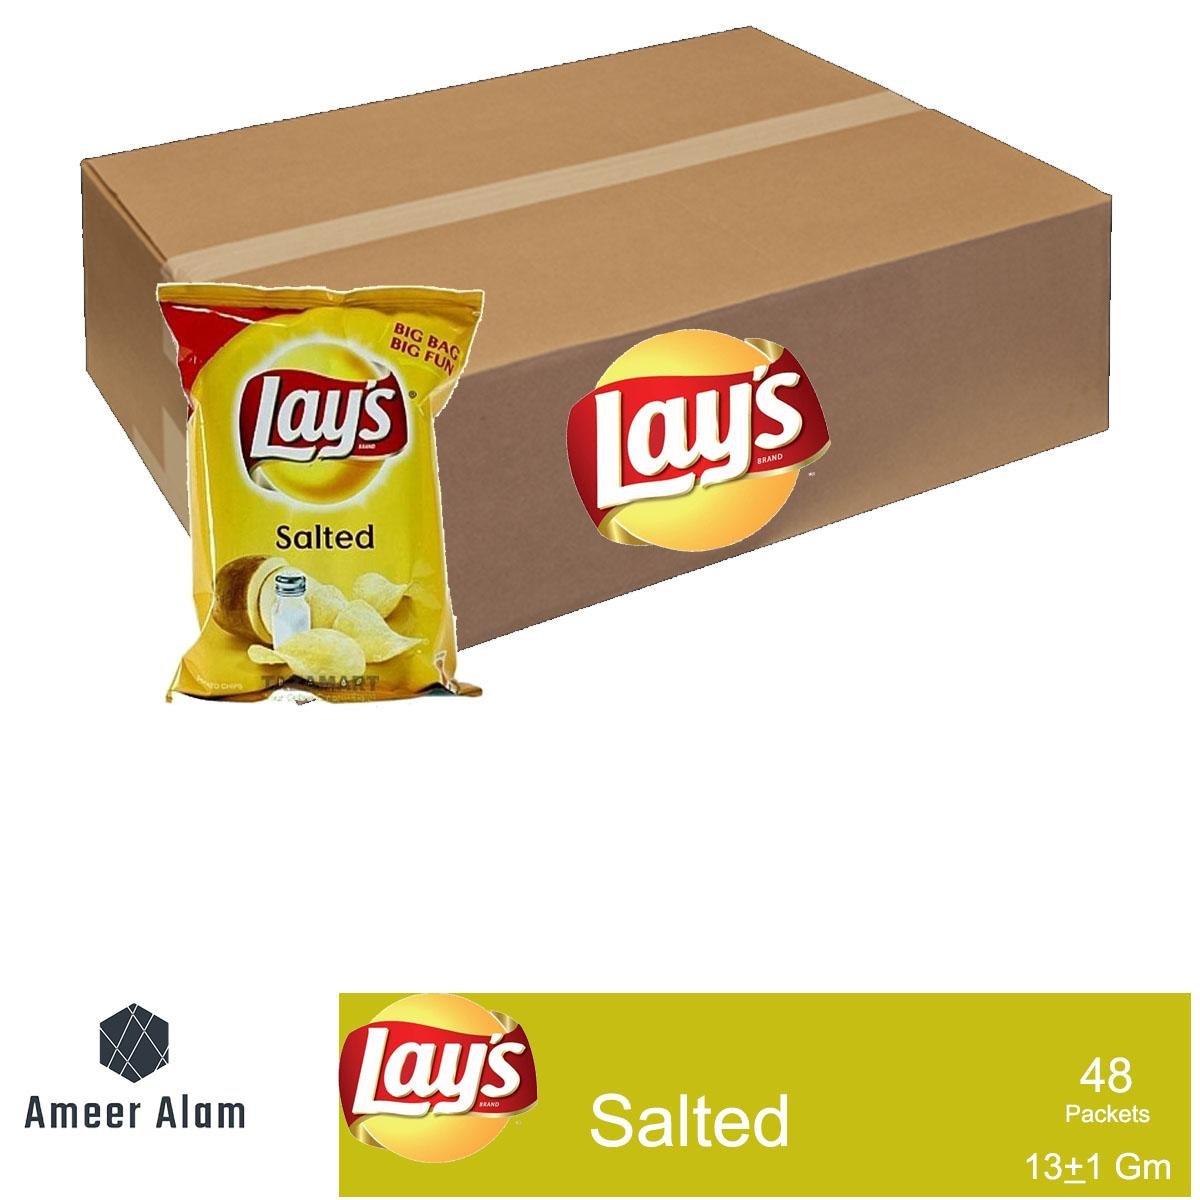 Lays Salted 13gms -64 Packets